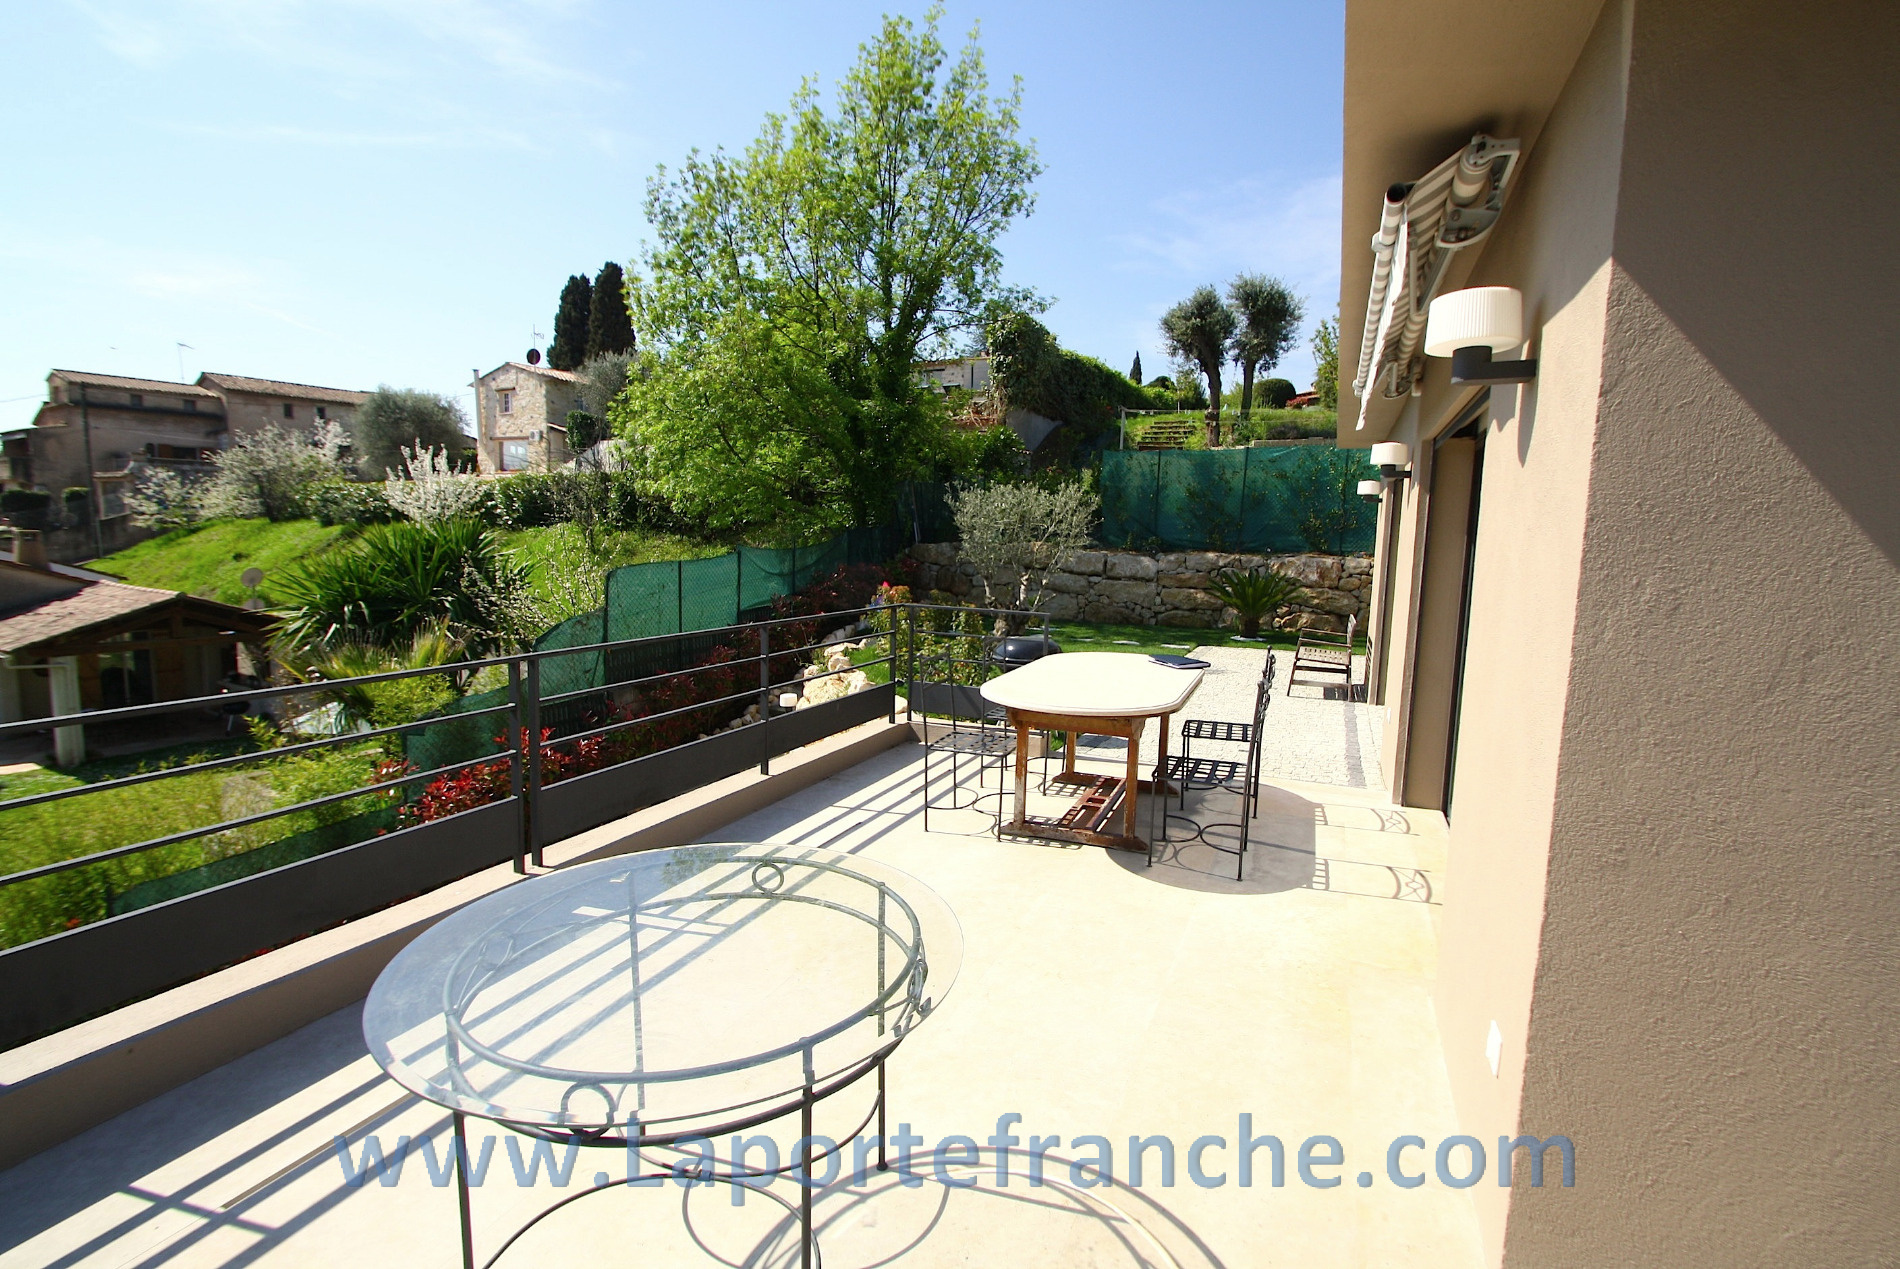 Vente la colle sur loup villa contemporaine avec piscine for Virginia piscines la colle sur loup